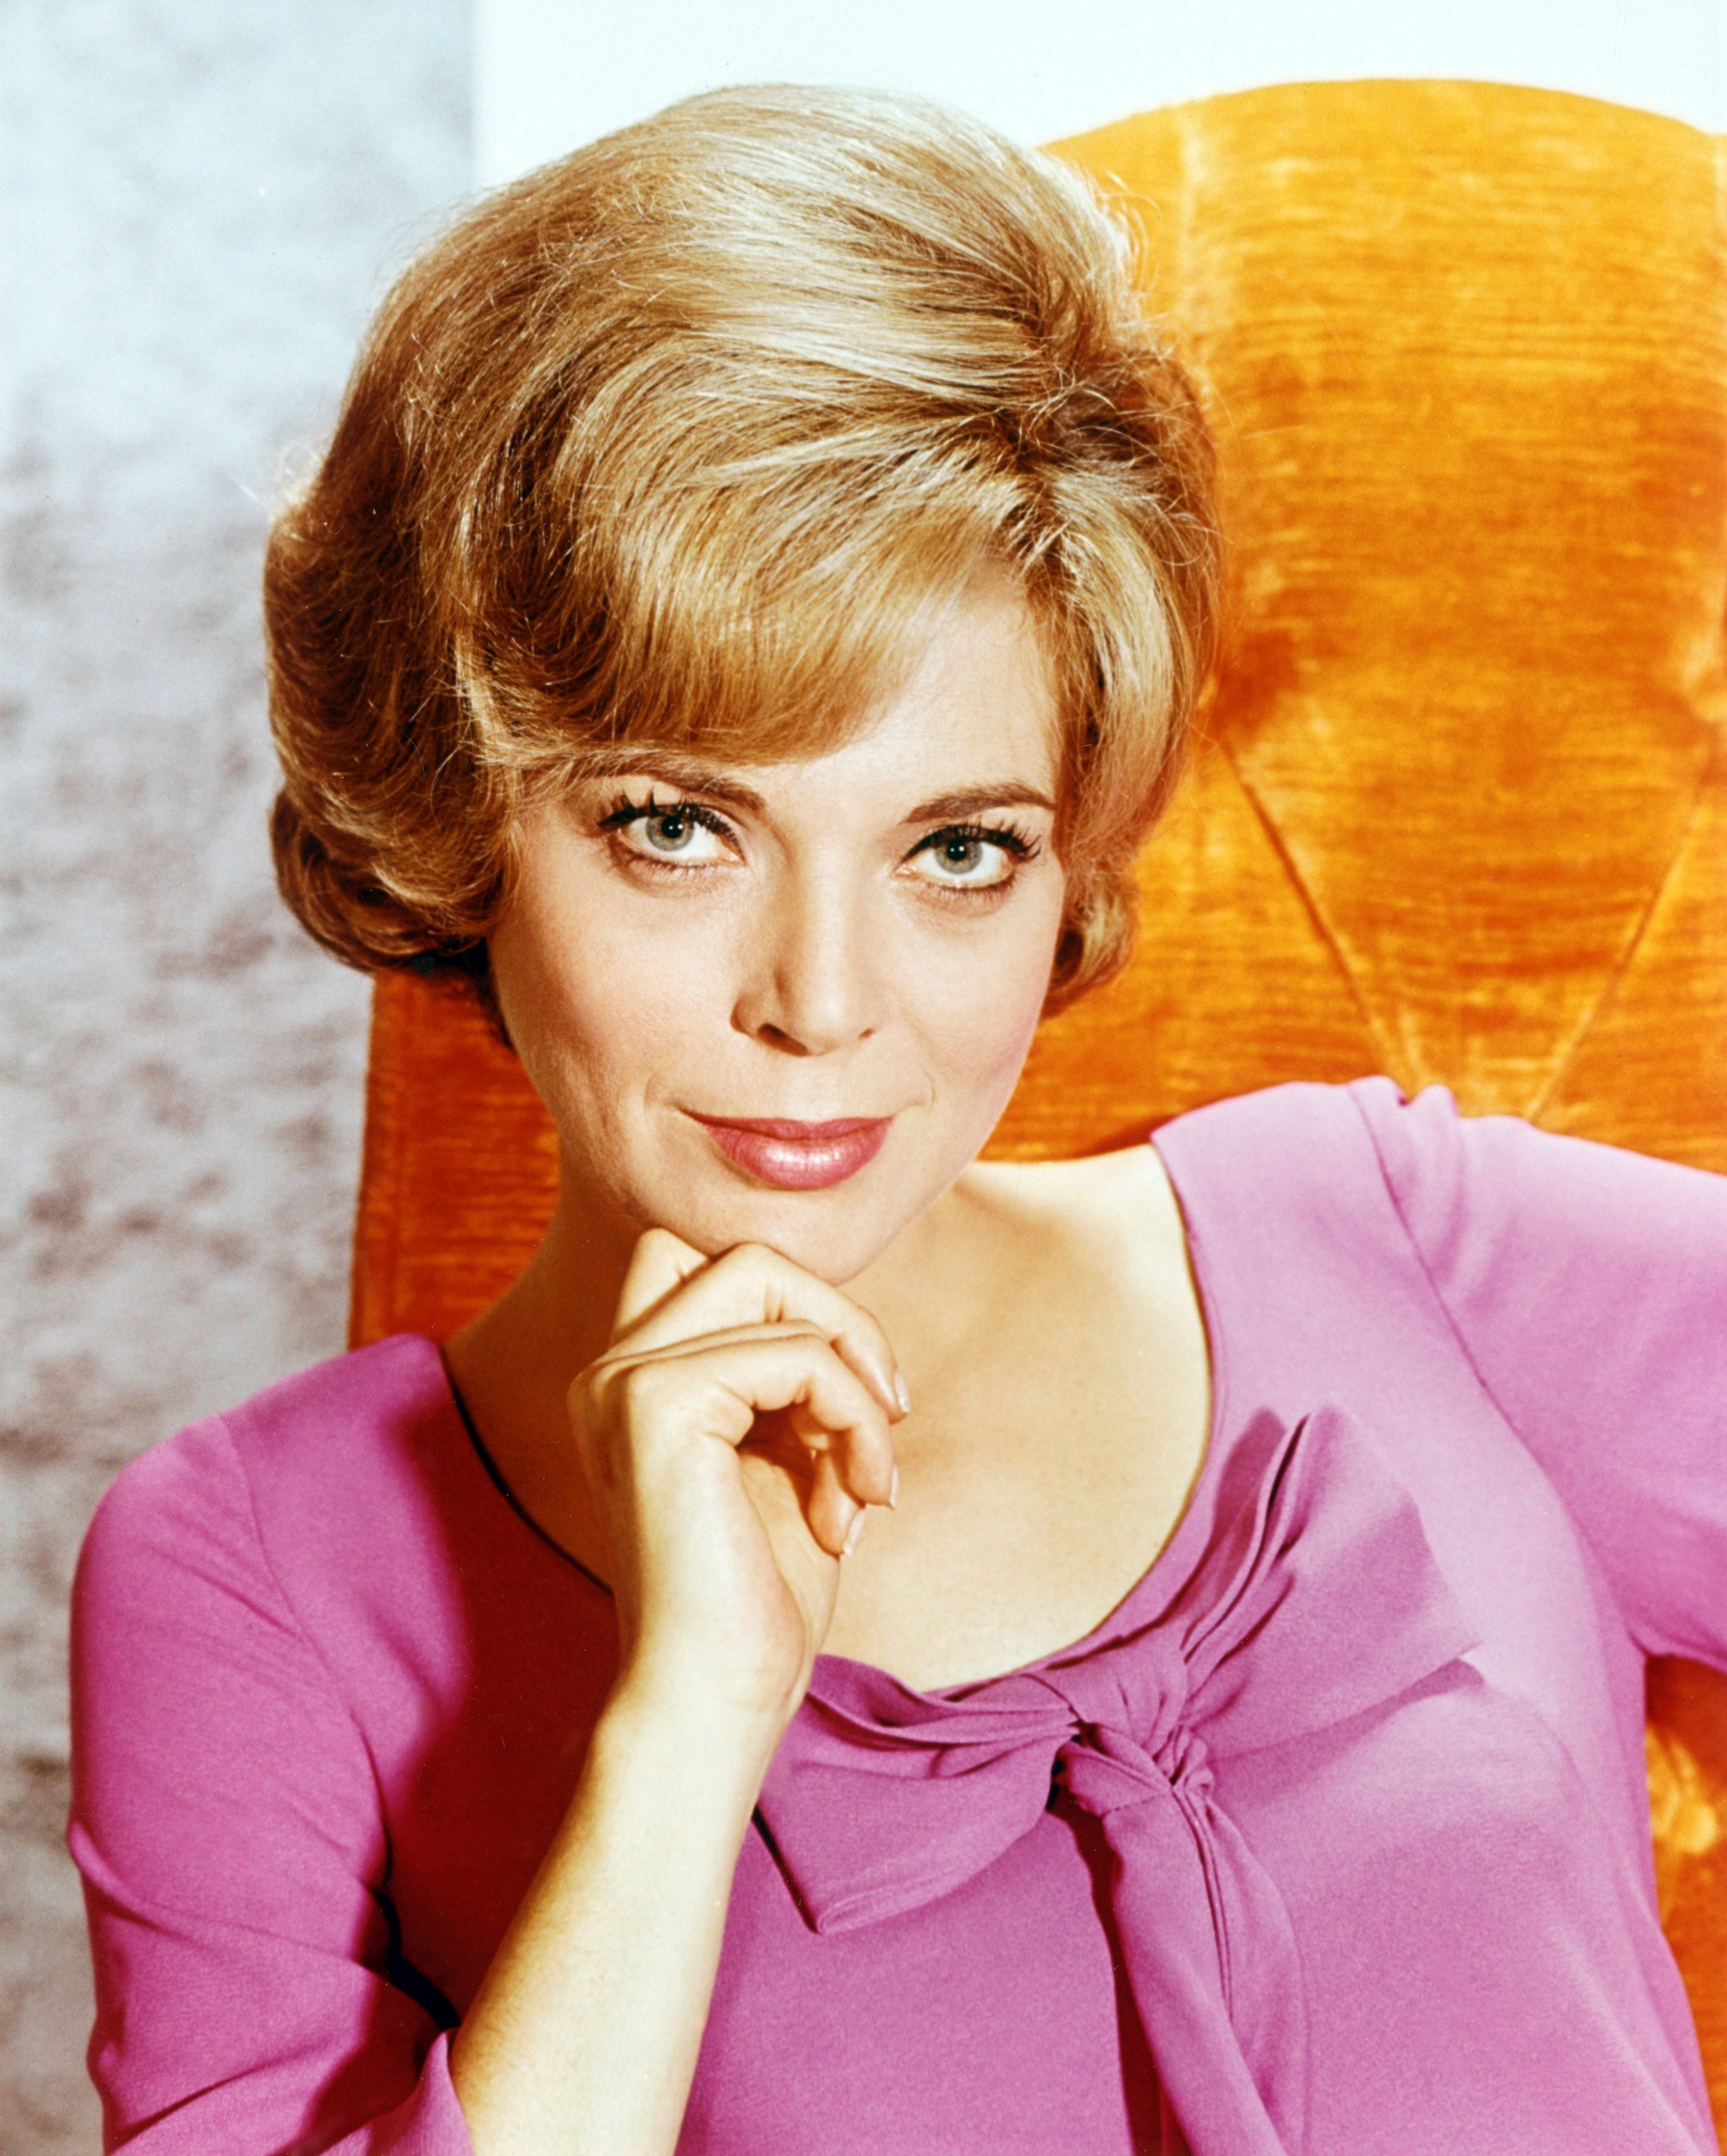 """Barbara Bain as Cinnamon Carter on """"Mission: Impossible"""" circa 1966 